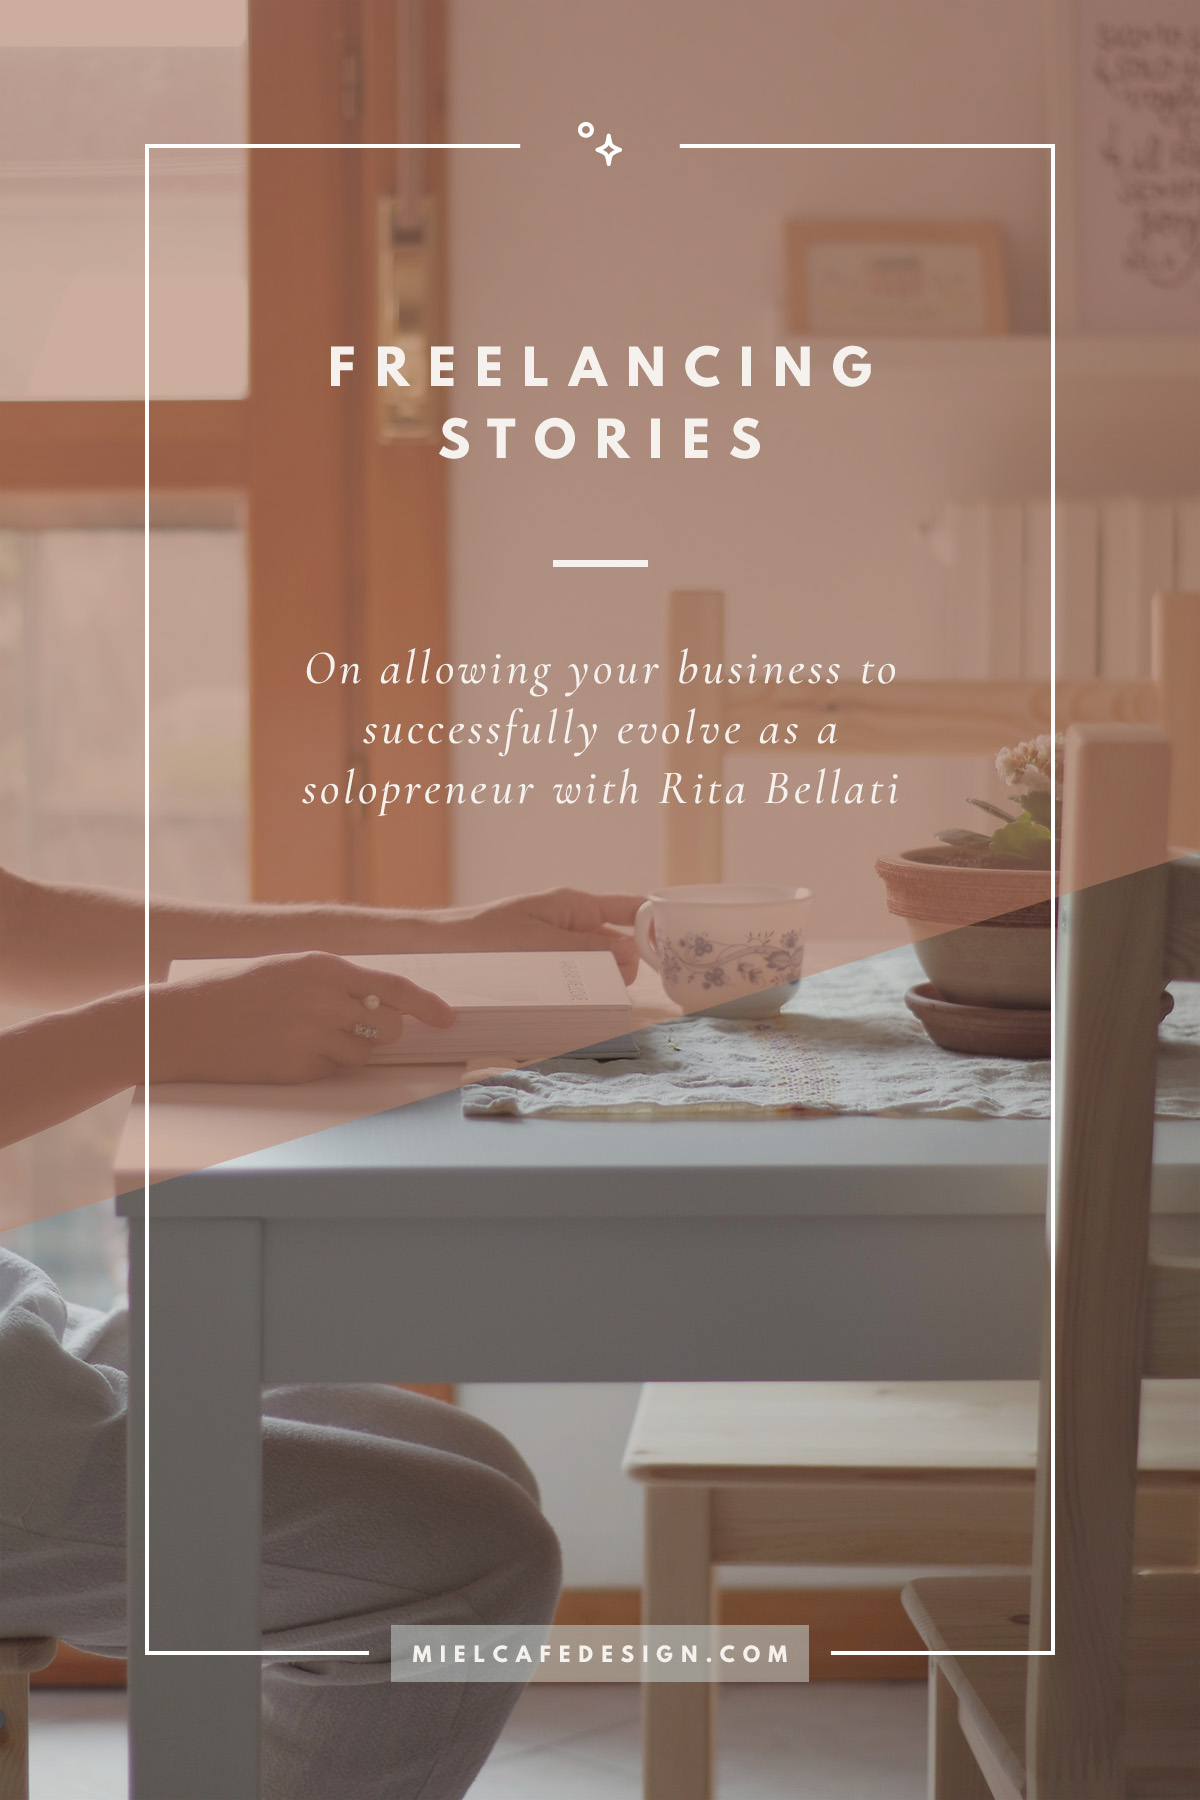 Freelancing Stories: Evolve With Your Business as a Solopreneur With Rita Bellati